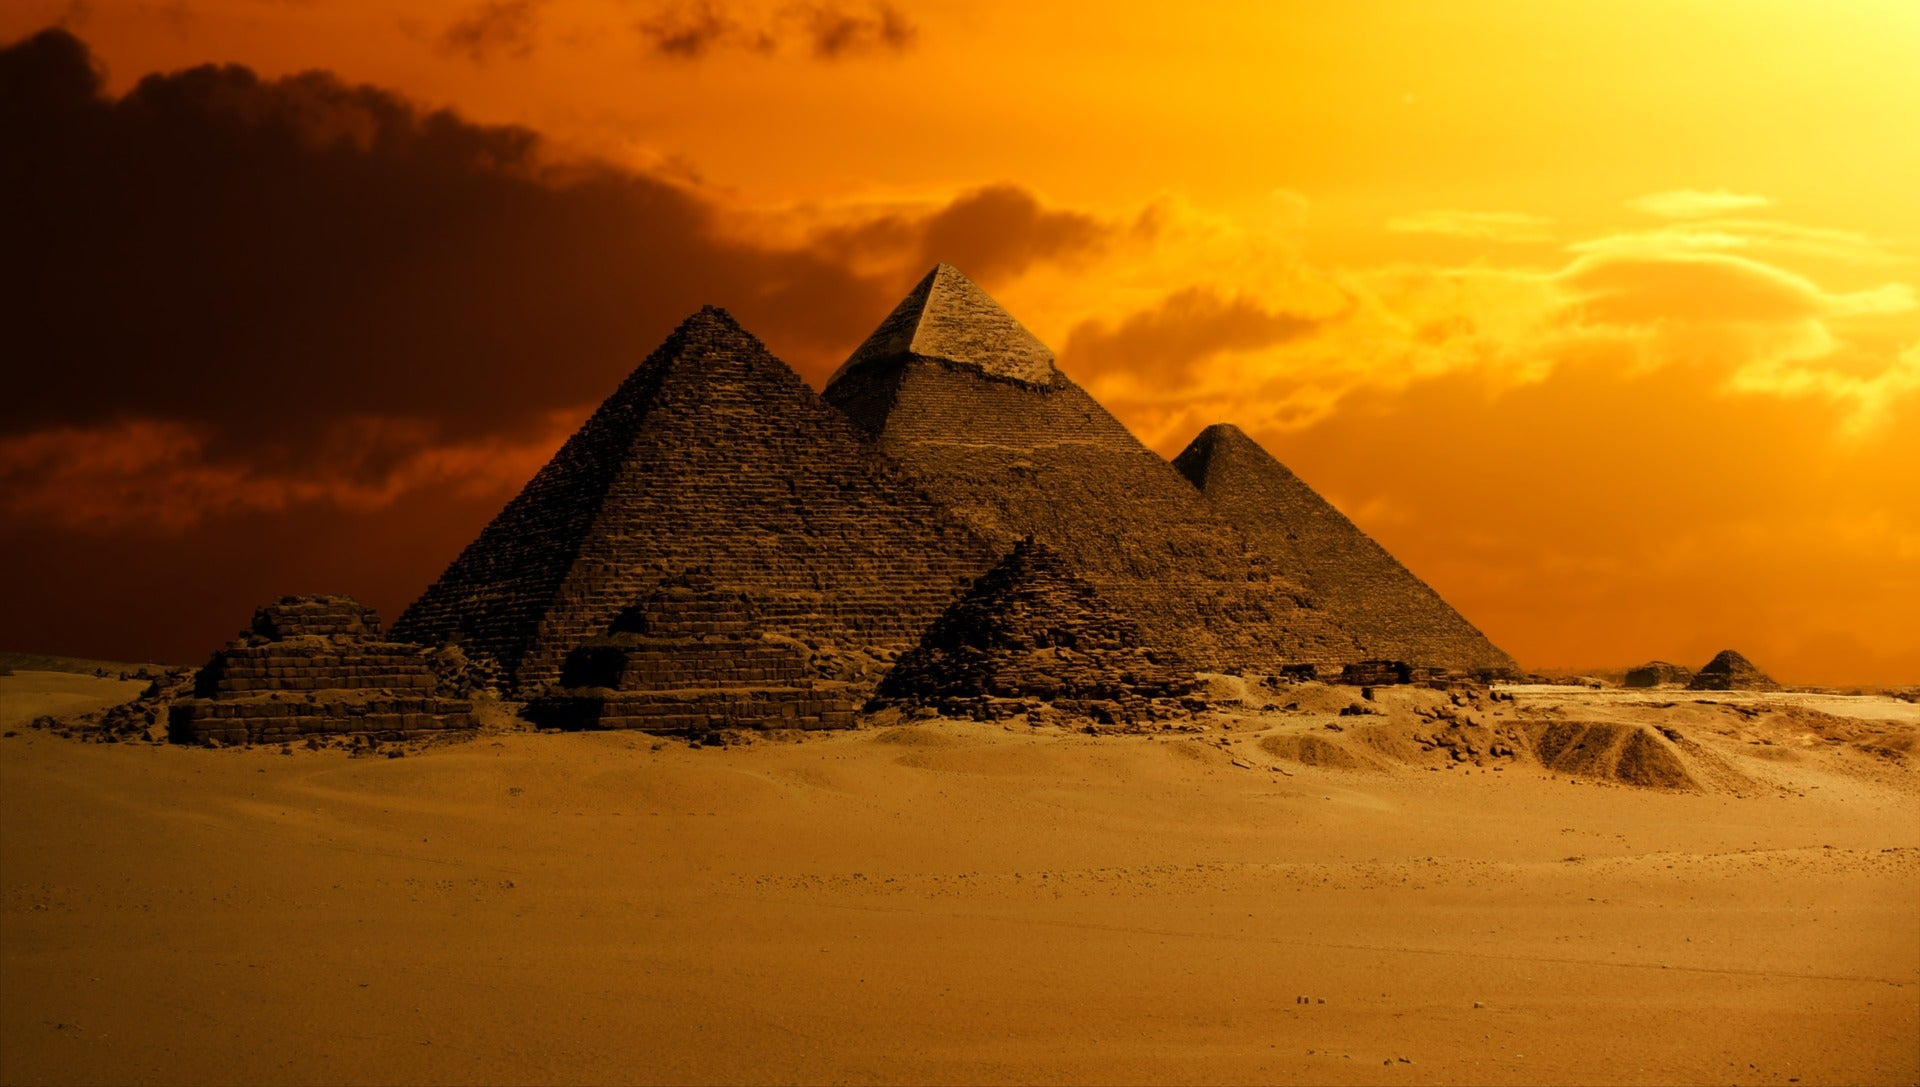 Phi, Pi and the Geometry Behind the Great Pyramid